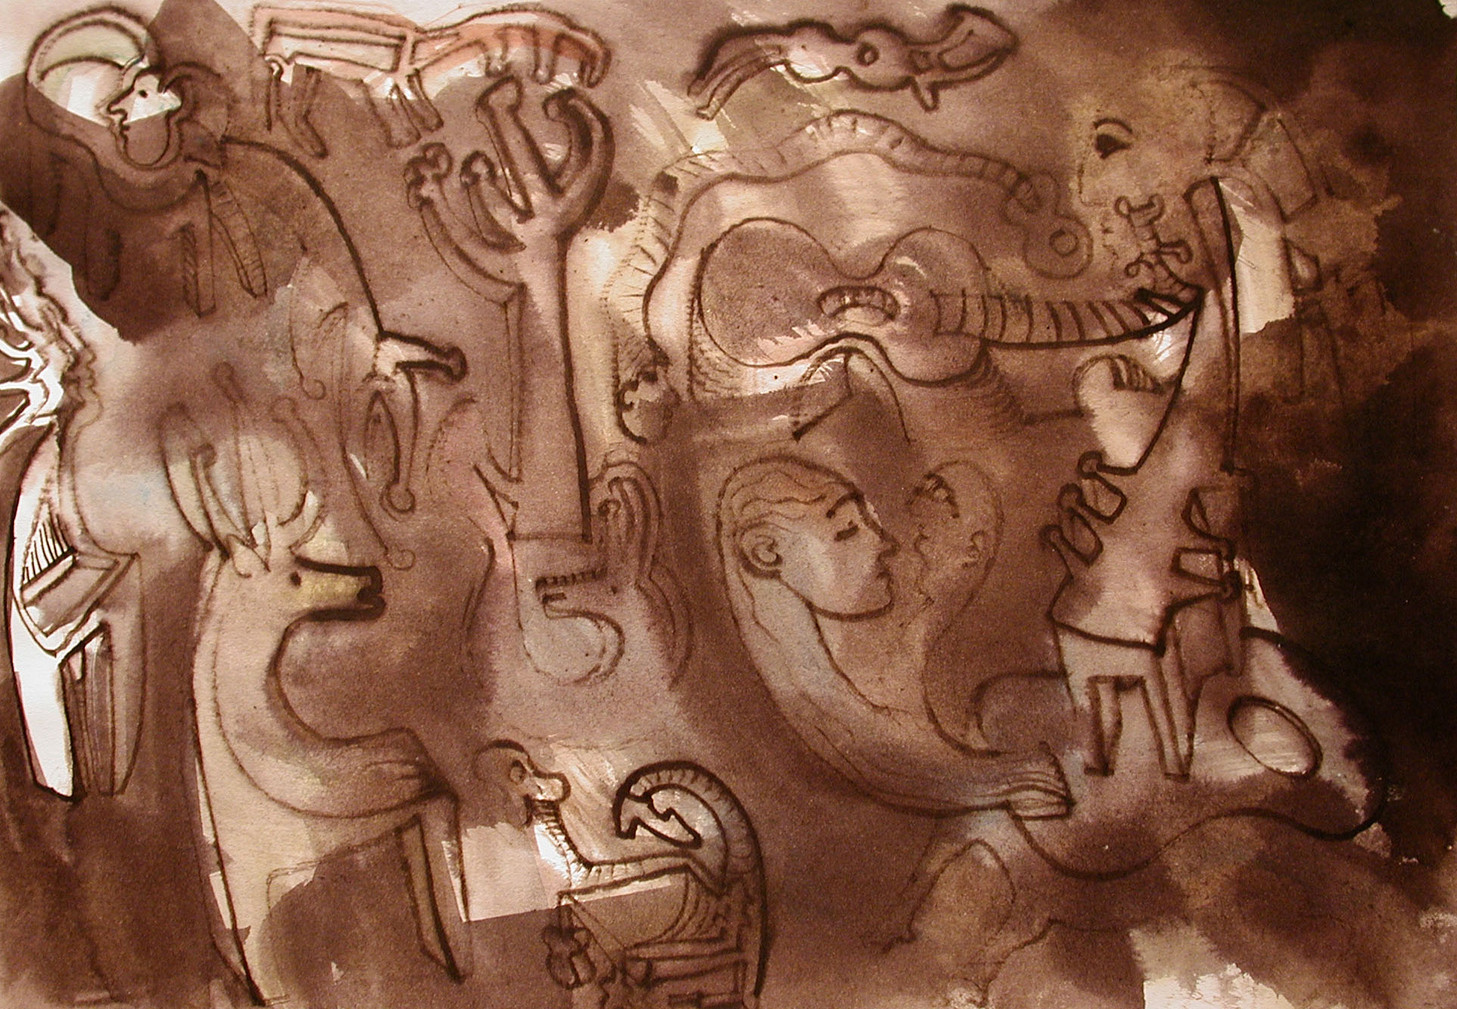 07_Guitar People, 2001, Aquarell u. Tint